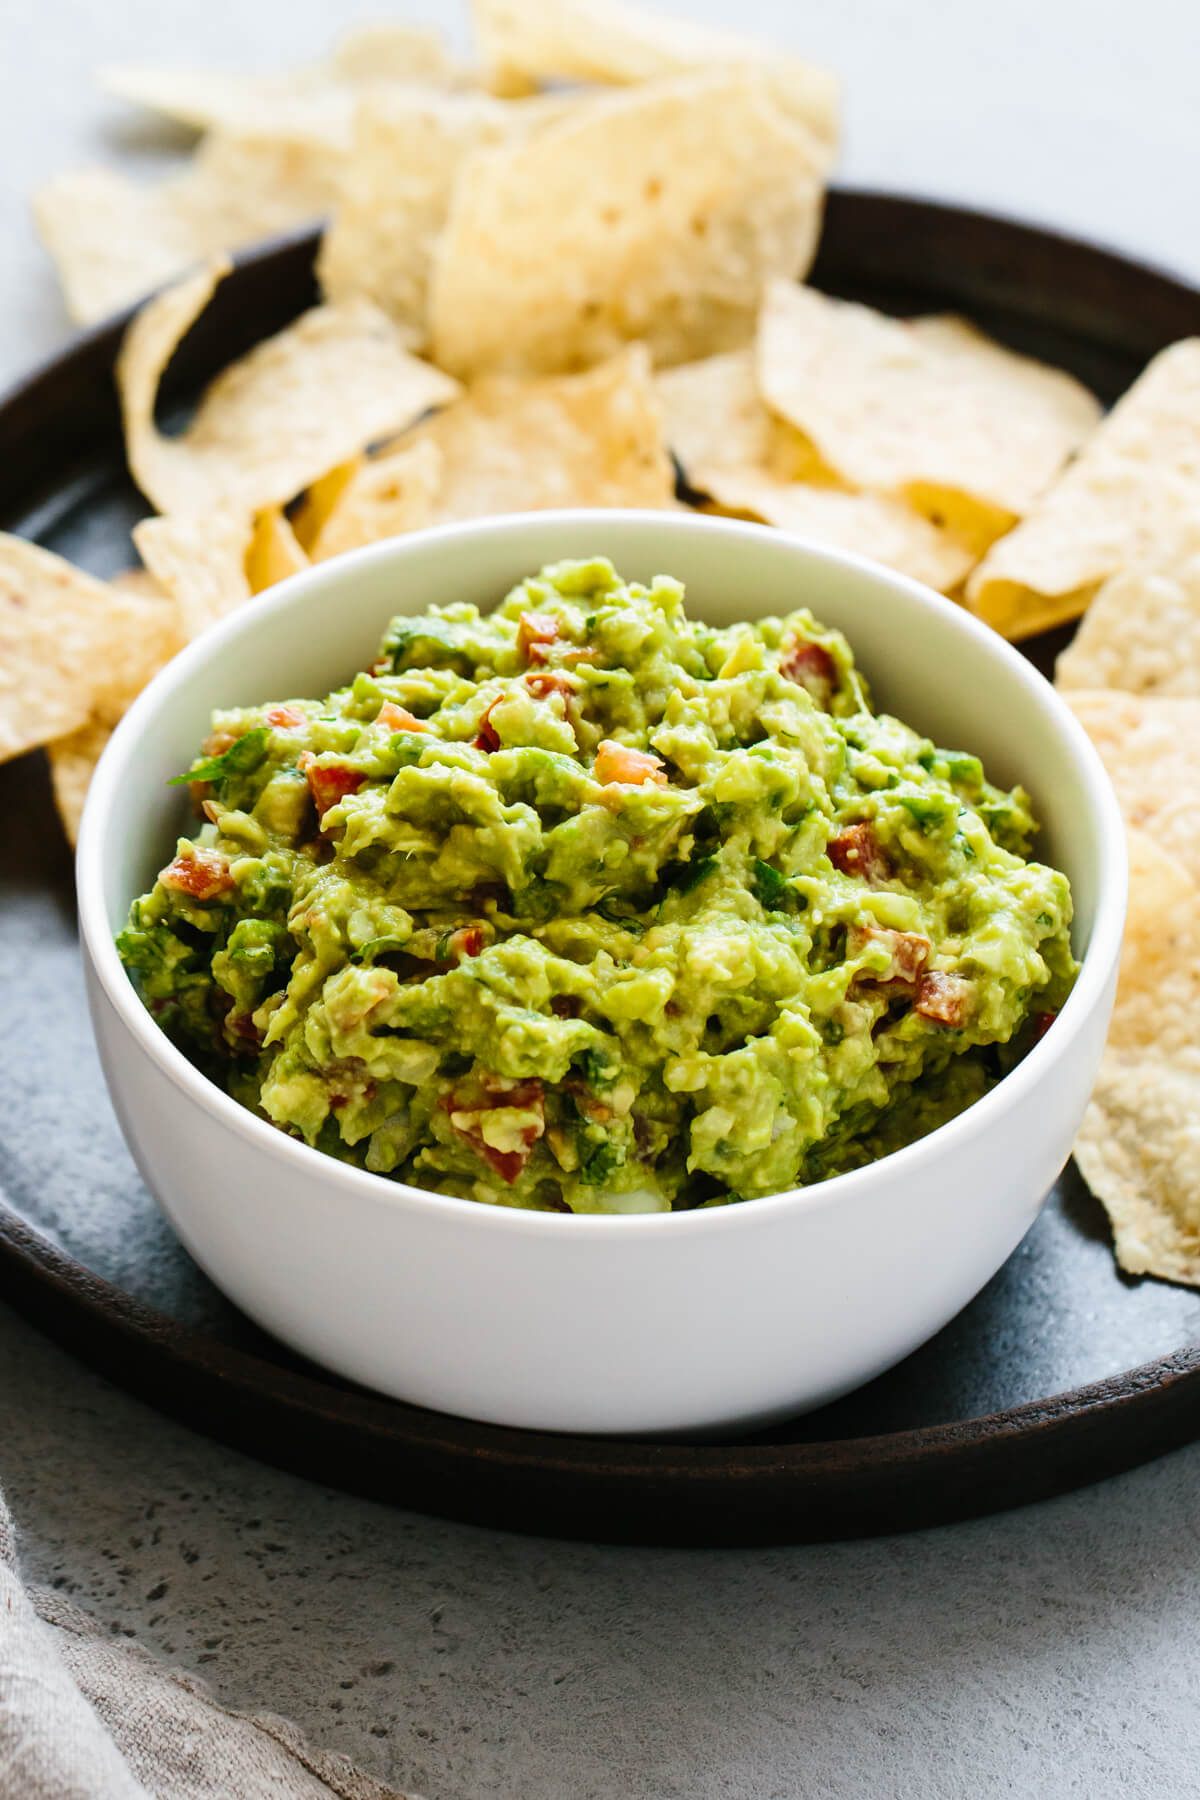 Guacamole in a white bowl surrounded by chips.